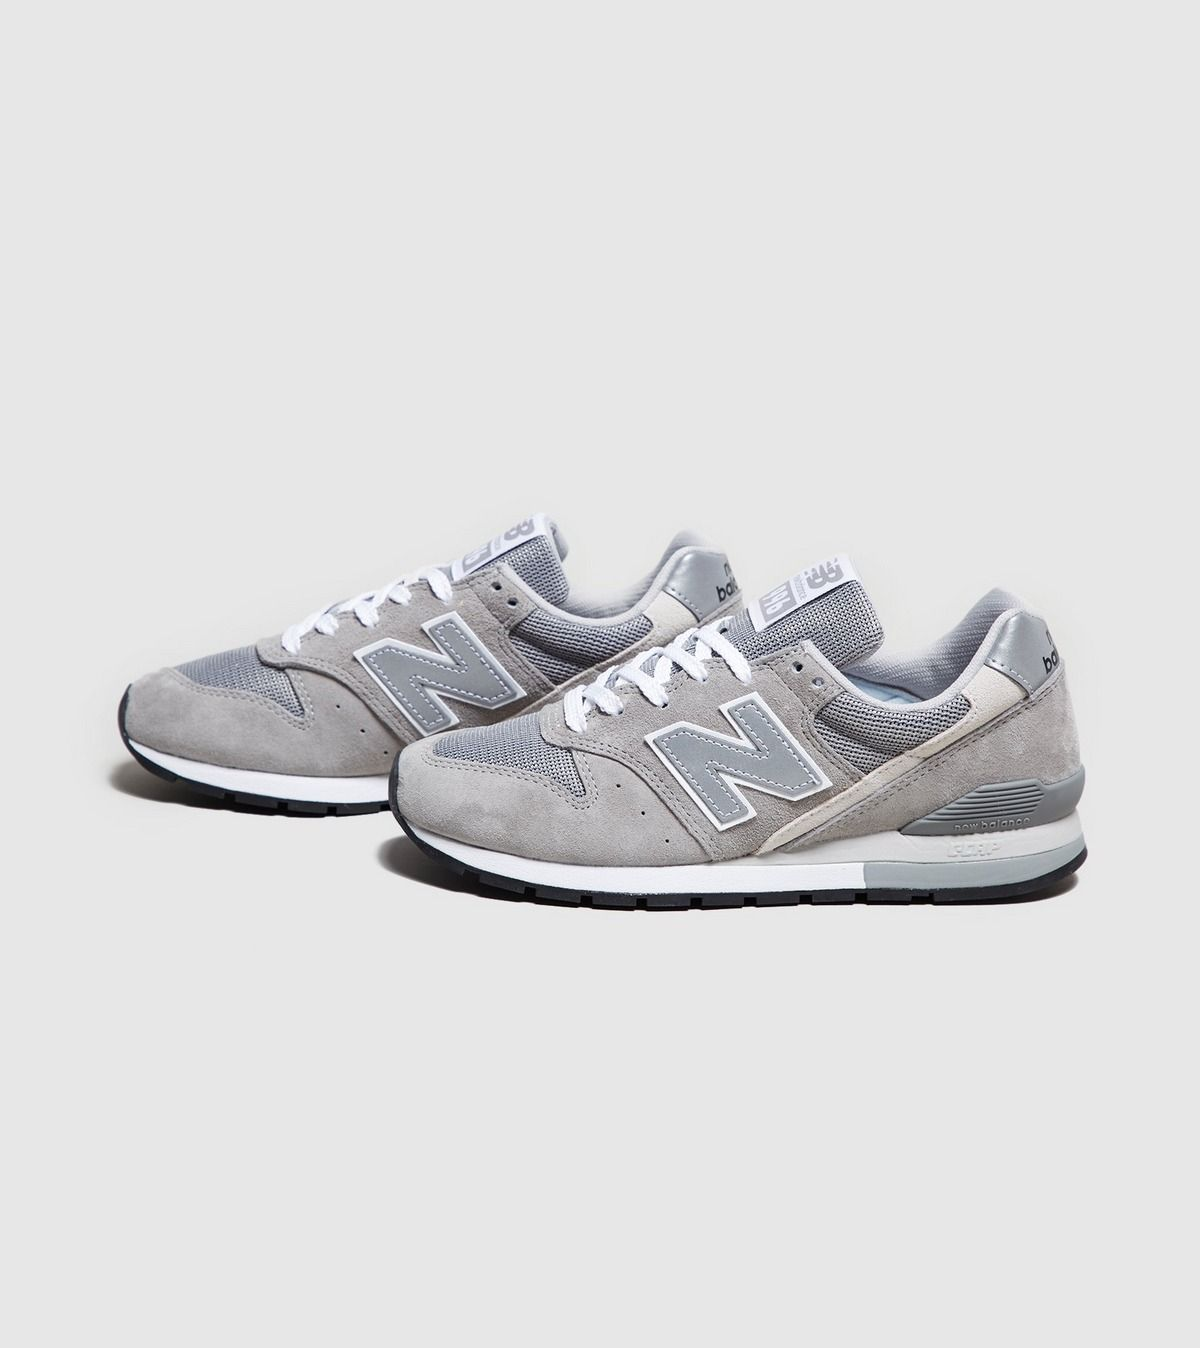 New Balance 996 Women's | Size? in 2020 | New balance 996 ...